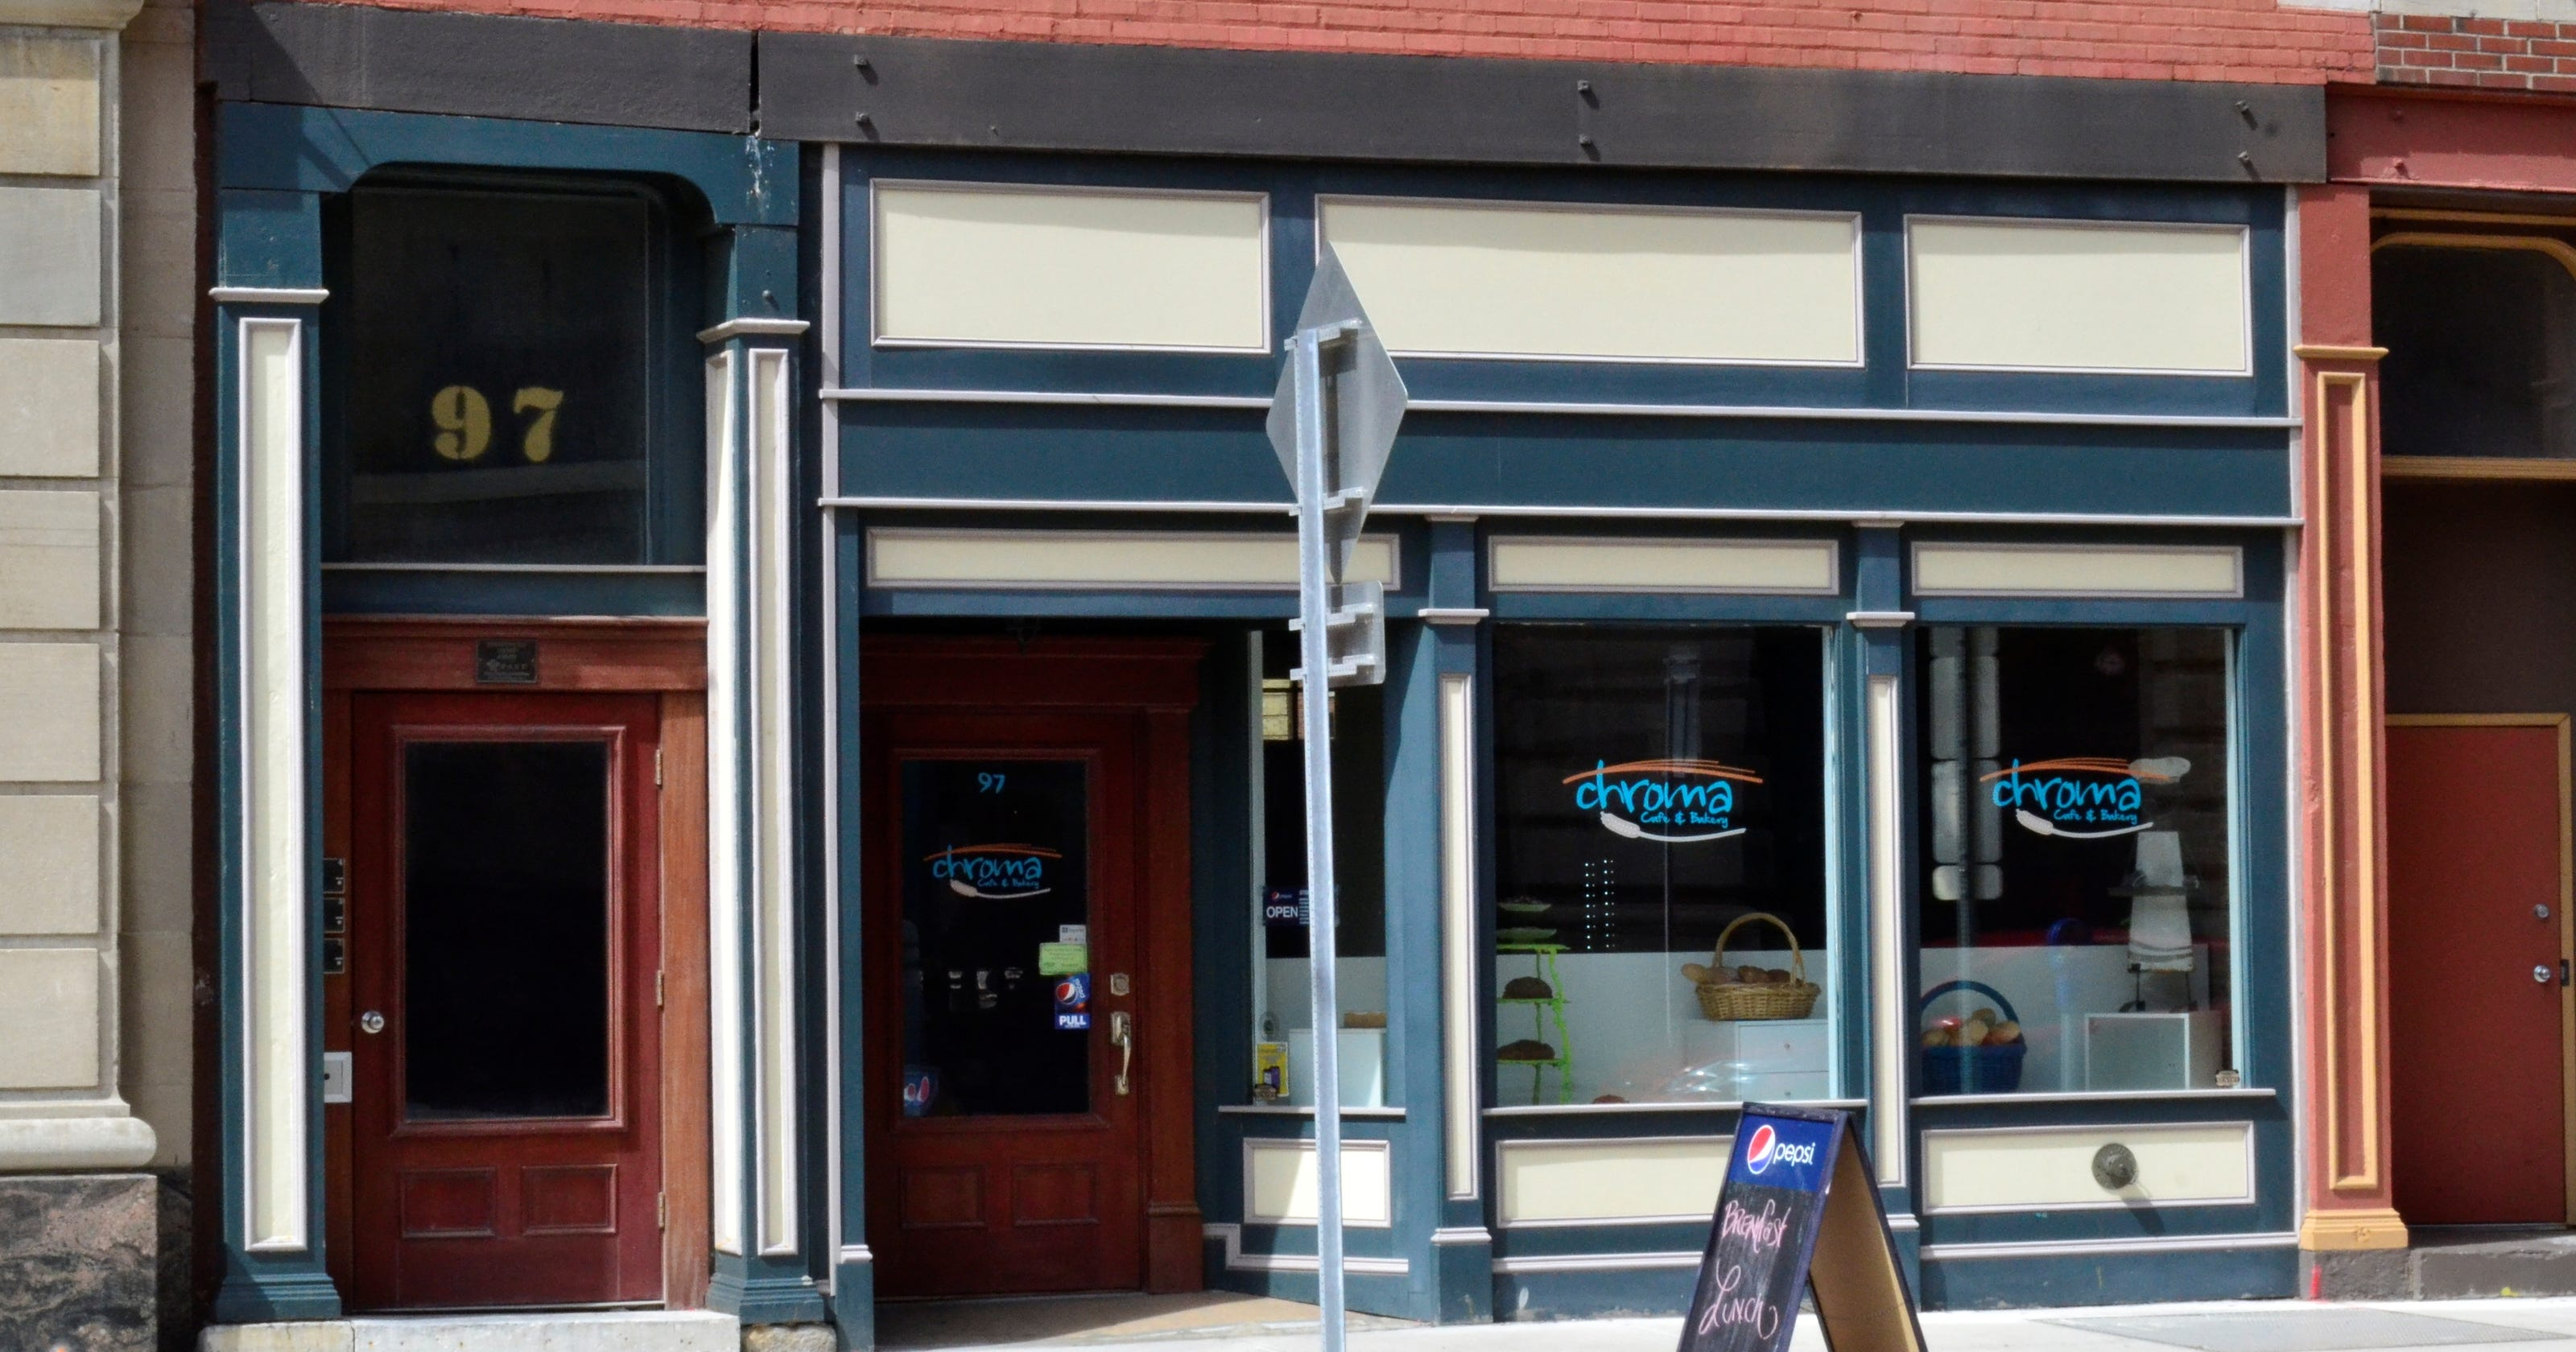 359196a6c083 Chroma Cafe & Bakery in Downtown Binghamton up for sale